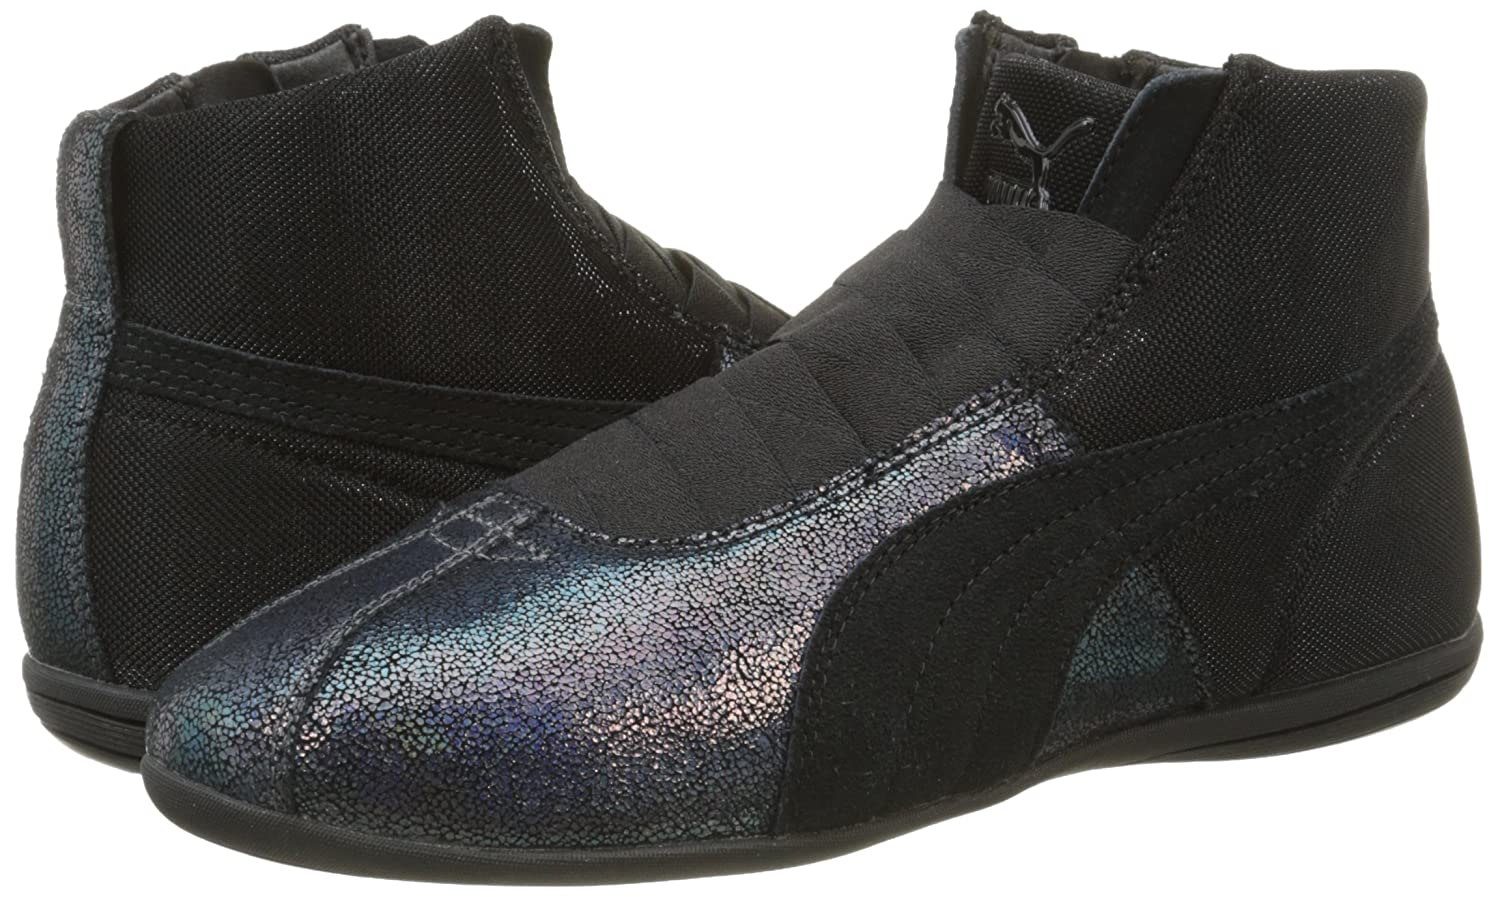 Puma Damen Damen Damen Eskiva Mid Ds High-top schwarz 7318b6